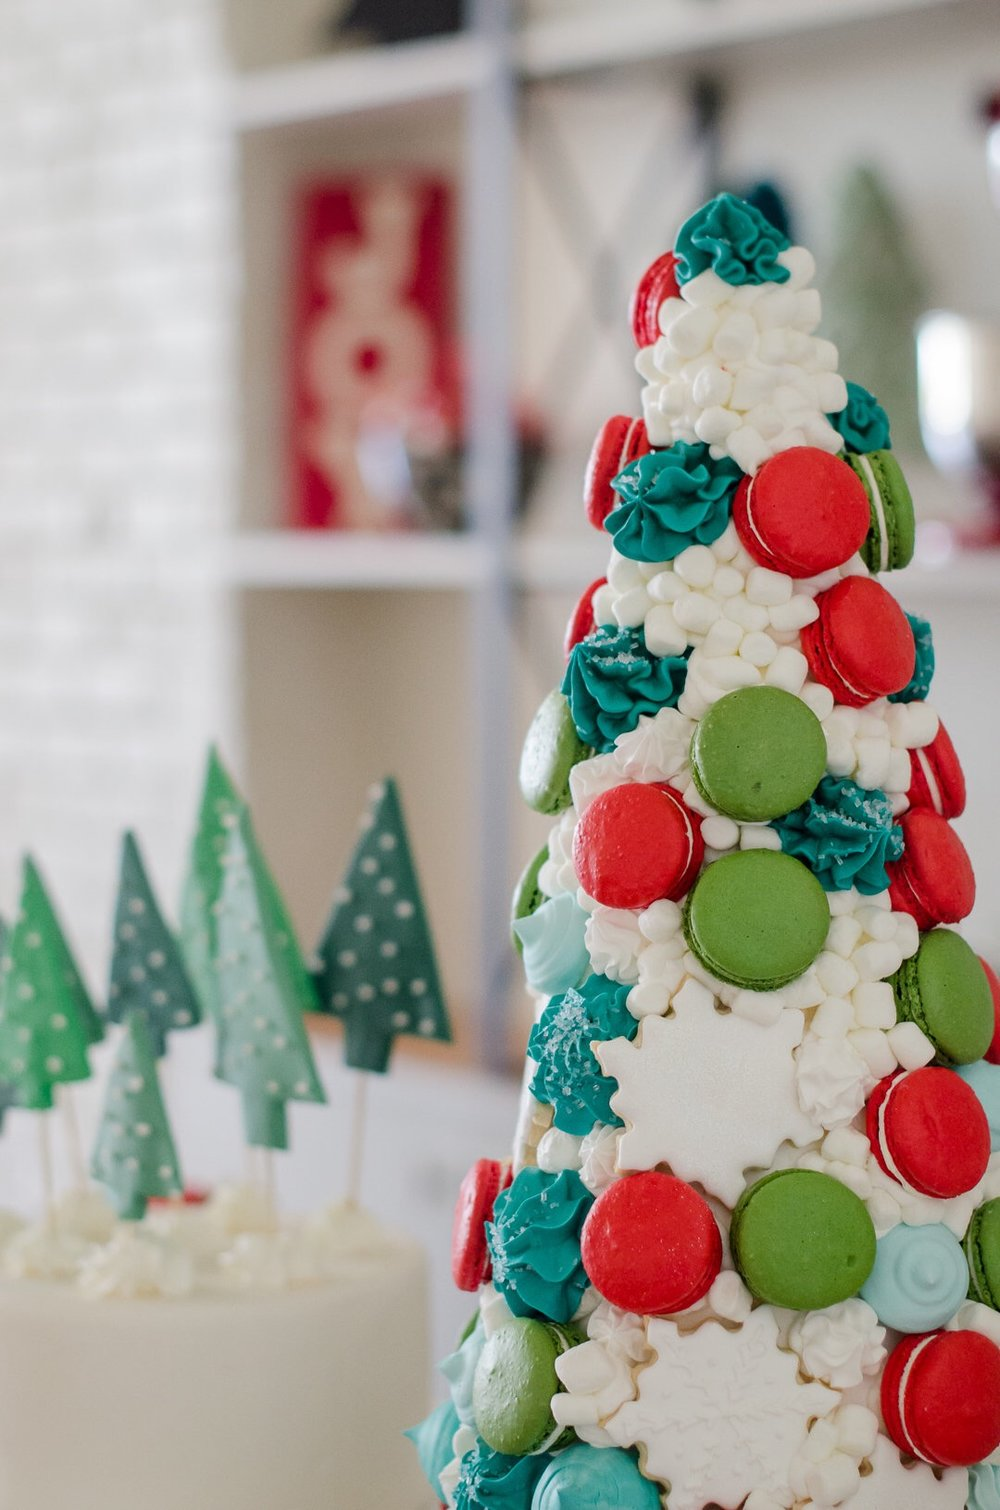 Meringue Tree for Dessert at a beautiful Christmas party. See more holiday party inspiration from Austin based party stylist Mint Event Design at www.minteventdesign.com #desserttable #christmasdesserts #holidayparty #holidays #partyideas #christmasparty #holidaypartyideas